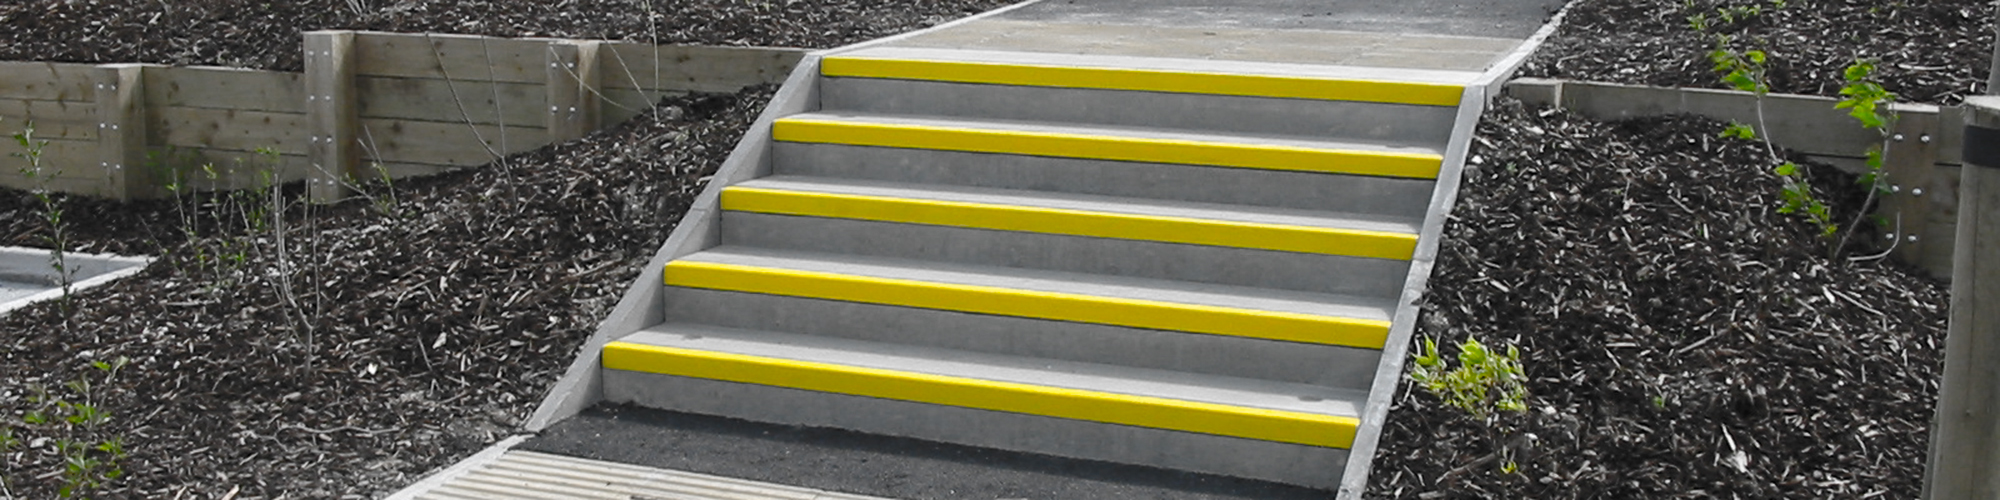 GRP anti-slip stair nosings and tread covers